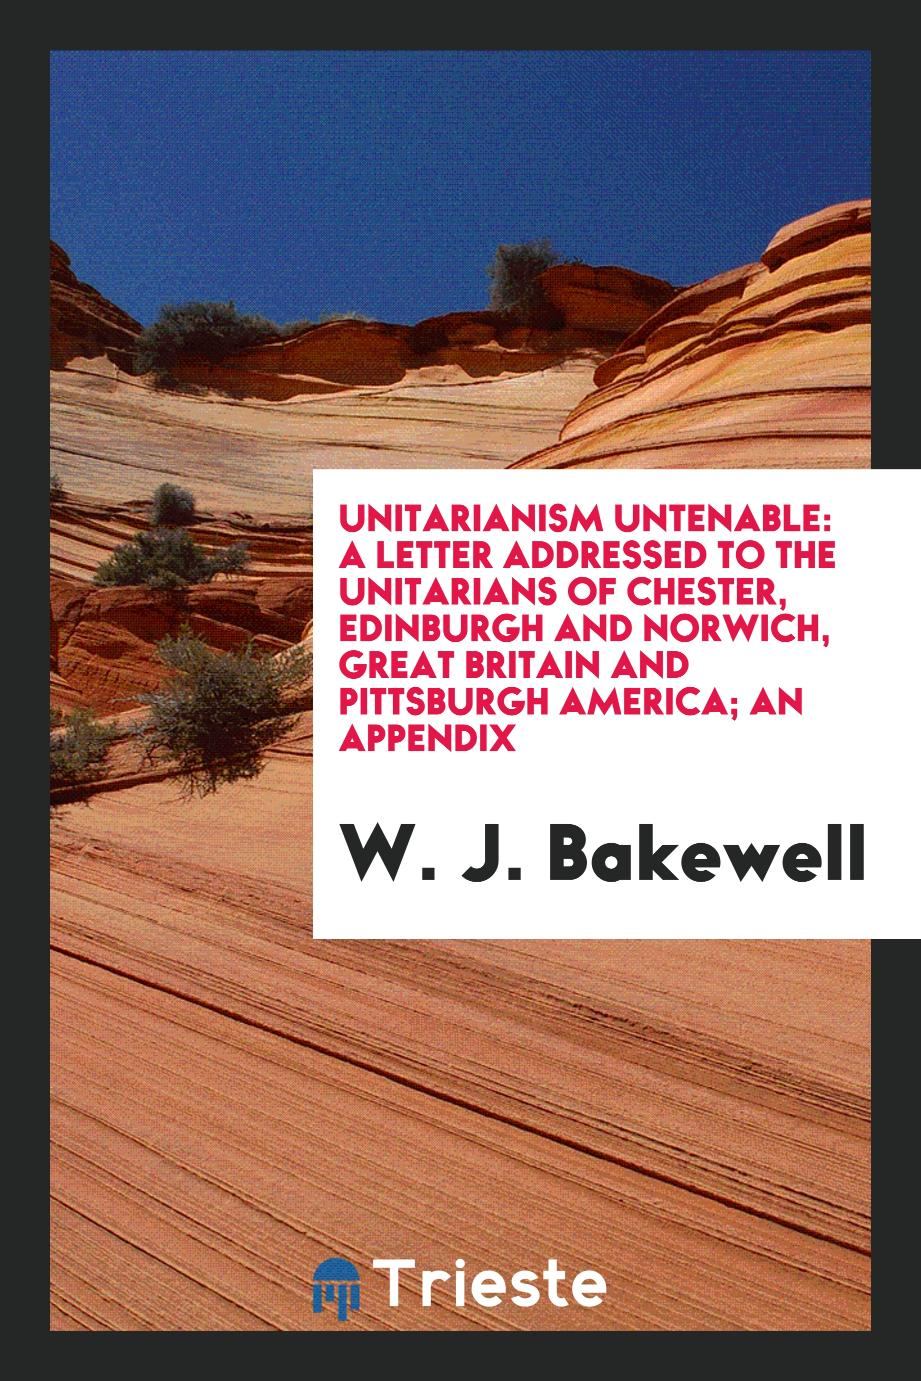 Unitarianism Untenable: A Letter Addressed to the Unitarians of Chester, Edinburgh and Norwich, Great Britain and Pittsburgh America; An Appendix